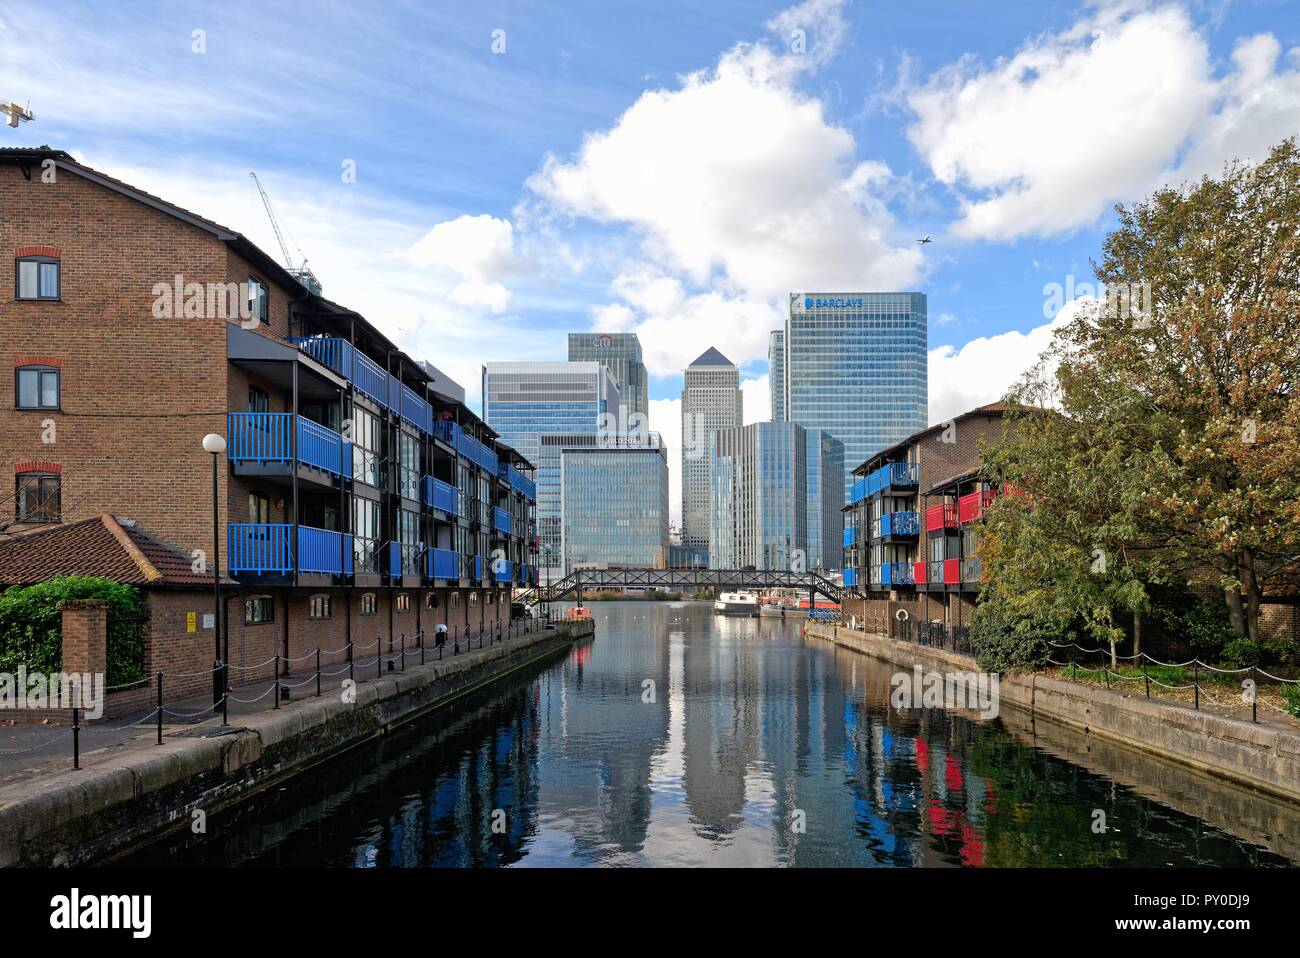 Canary Wharf skyscrapers viewed from the entrance to the West India Docks London Docklands England UK - Stock Image